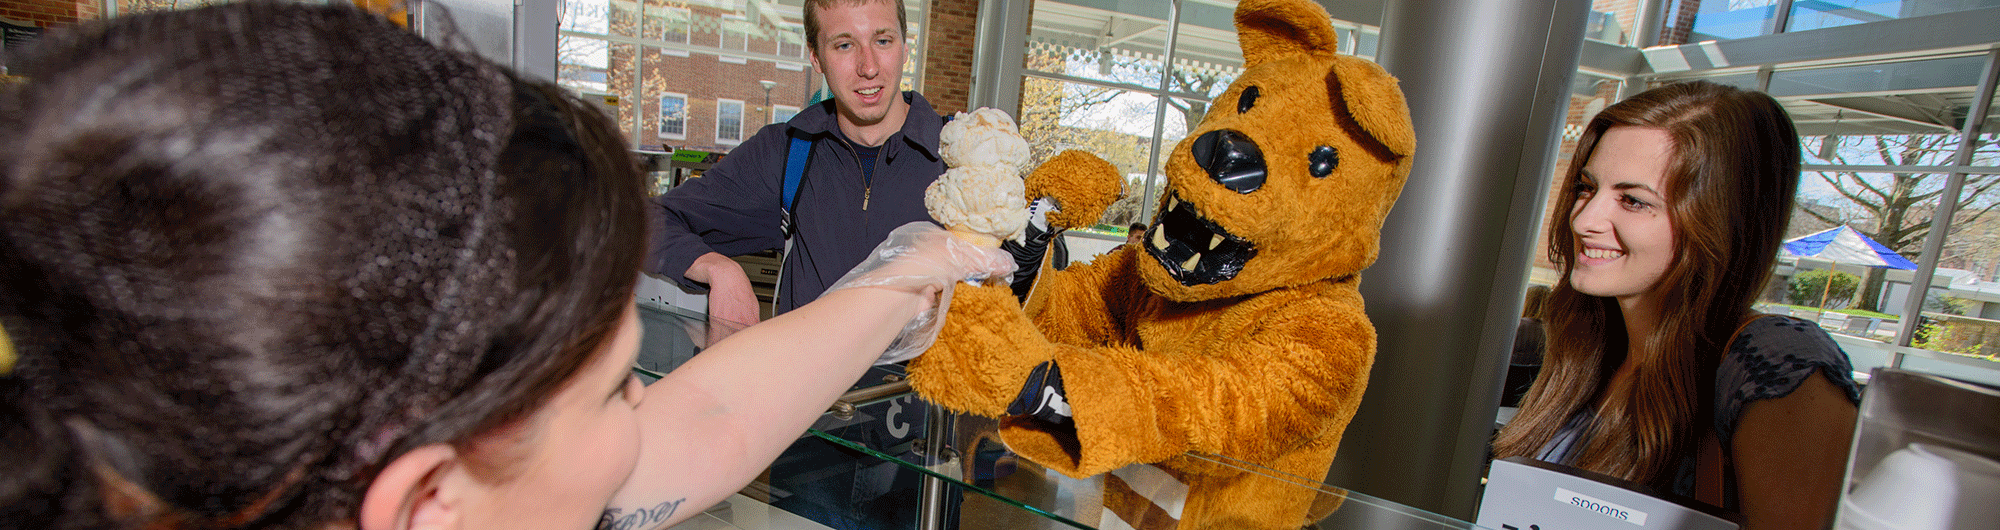 Lion and students getting ice cream